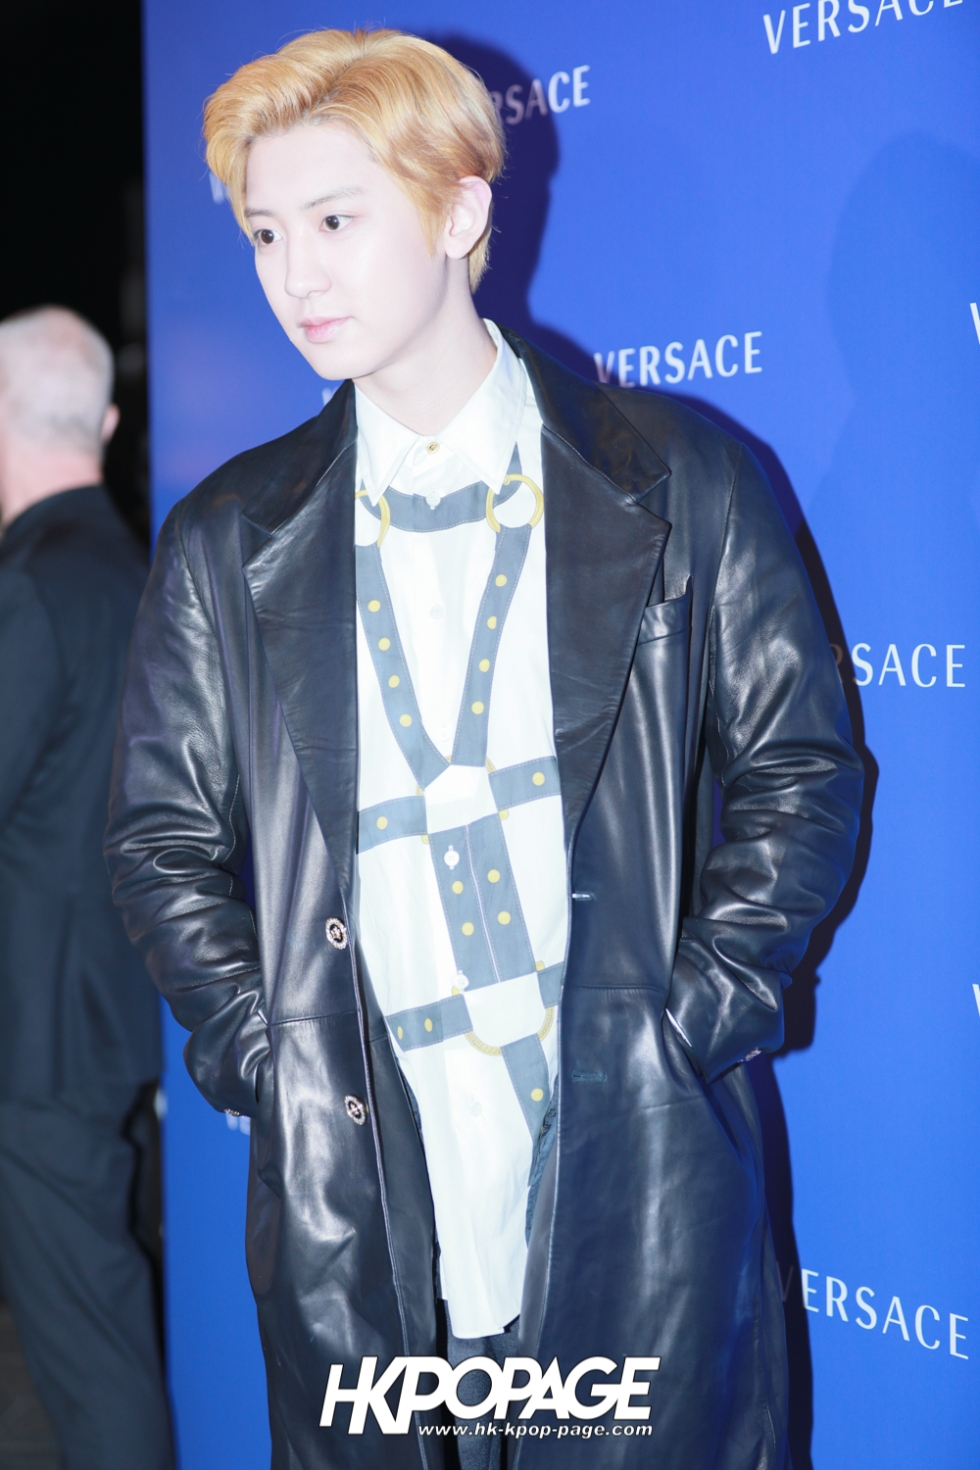 [HK.KPOP.PAGE] 190426_Chanyeol_VERSACE EVENT-6